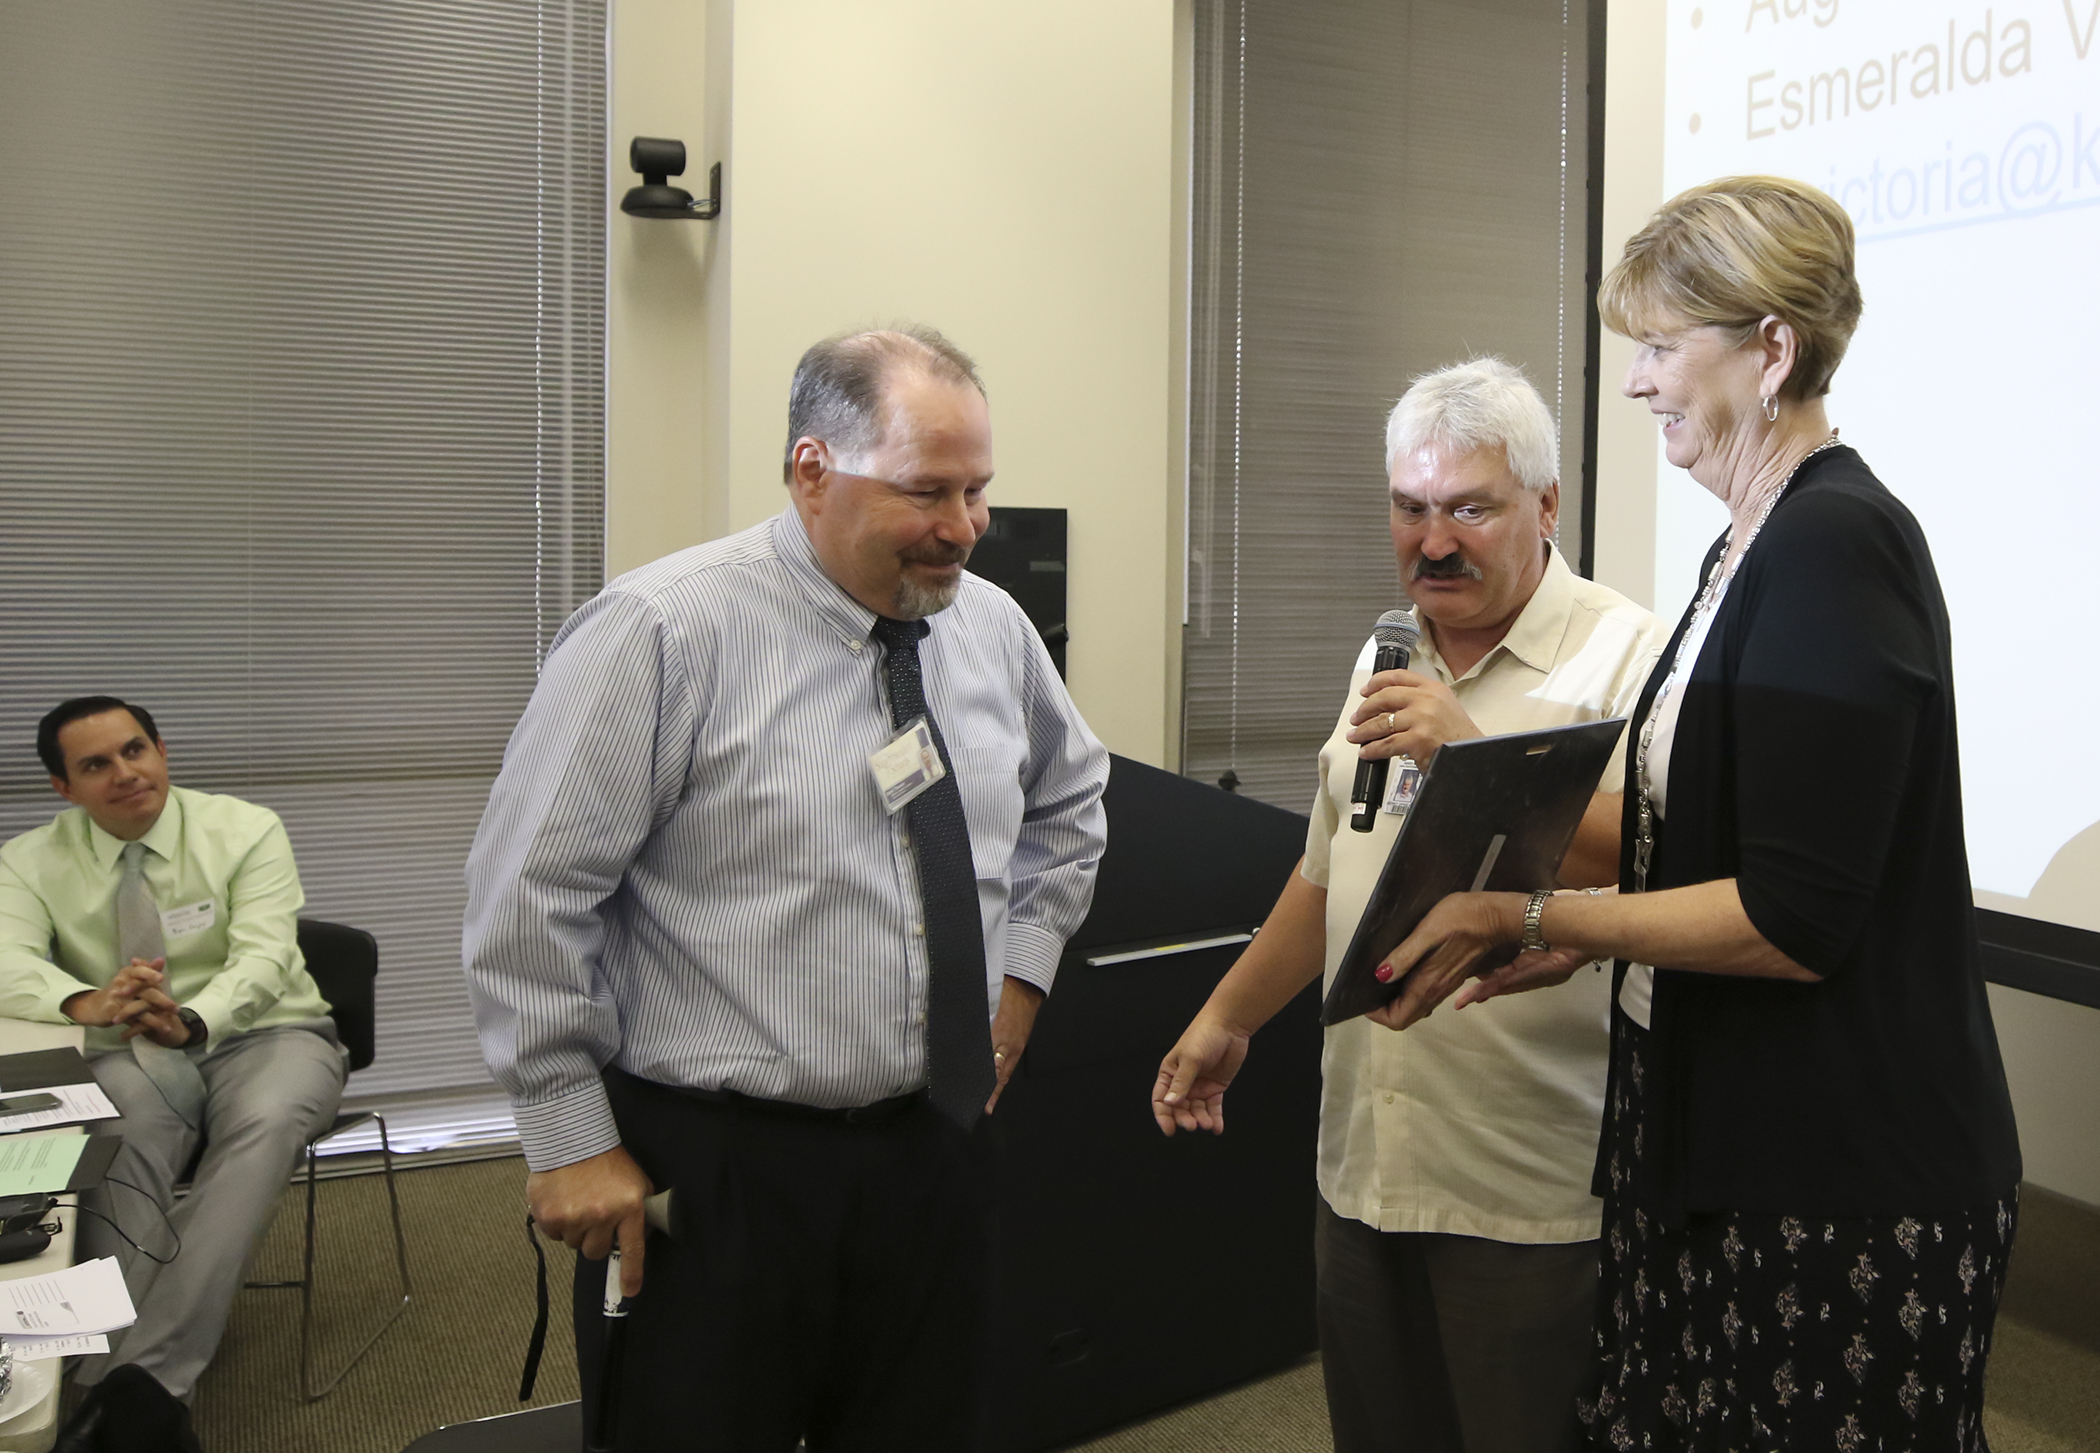 Daryl Thiesen Honored for School Attendance Work